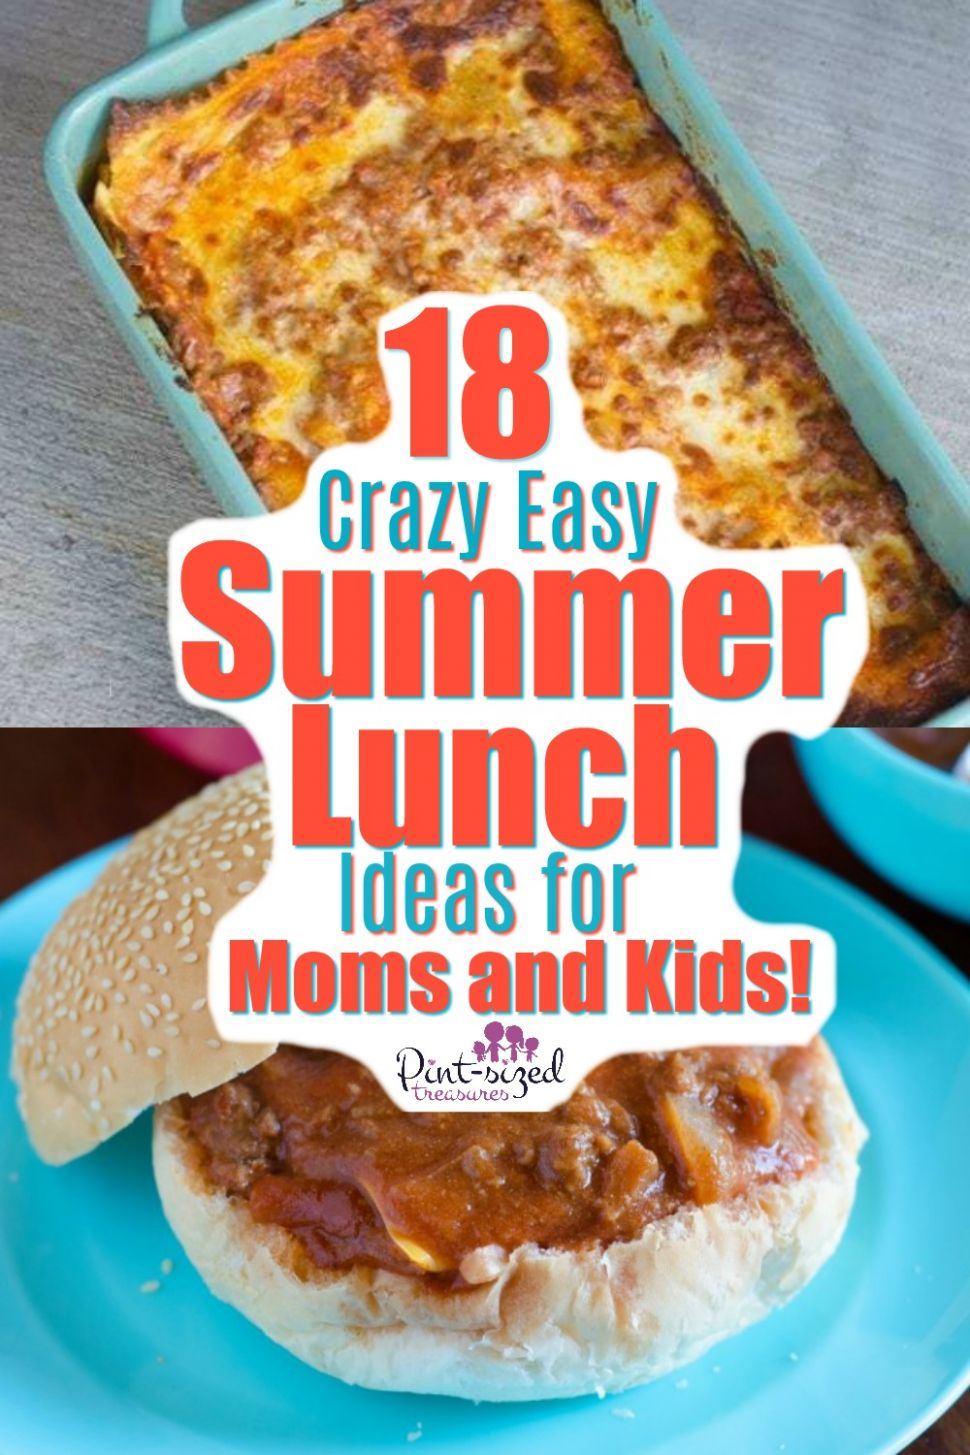 8 Crazy Easy Summer Lunch Ideas for Moms and Kids · Pint-sized ...